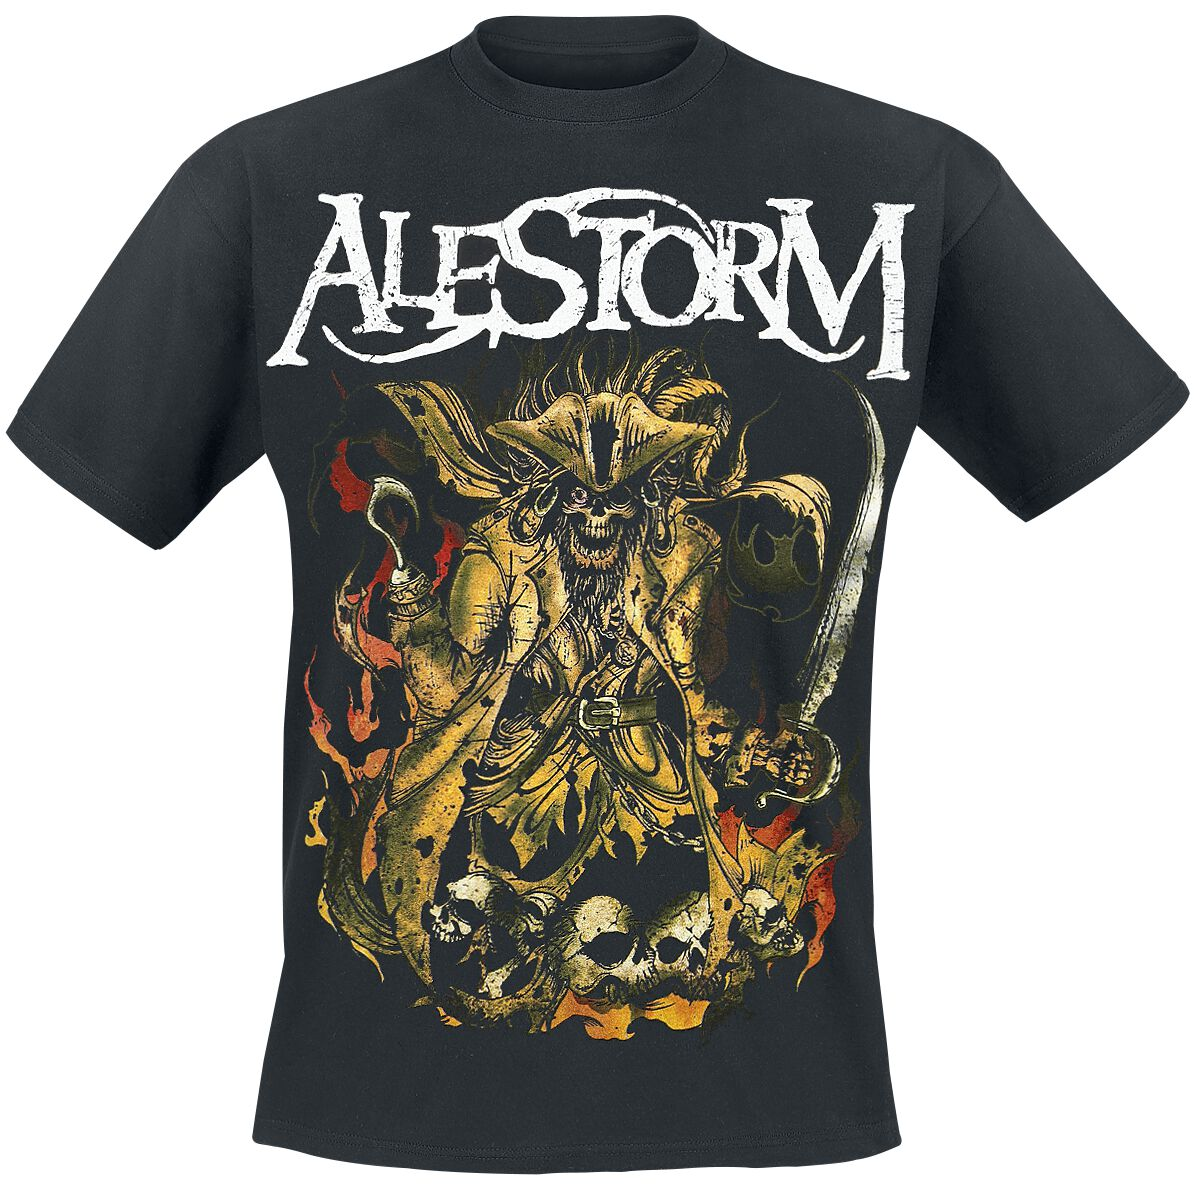 Zespoły - Koszulki - T-Shirt Alestorm We Are Here To Drink Your Beer! T-Shirt czarny - 293590